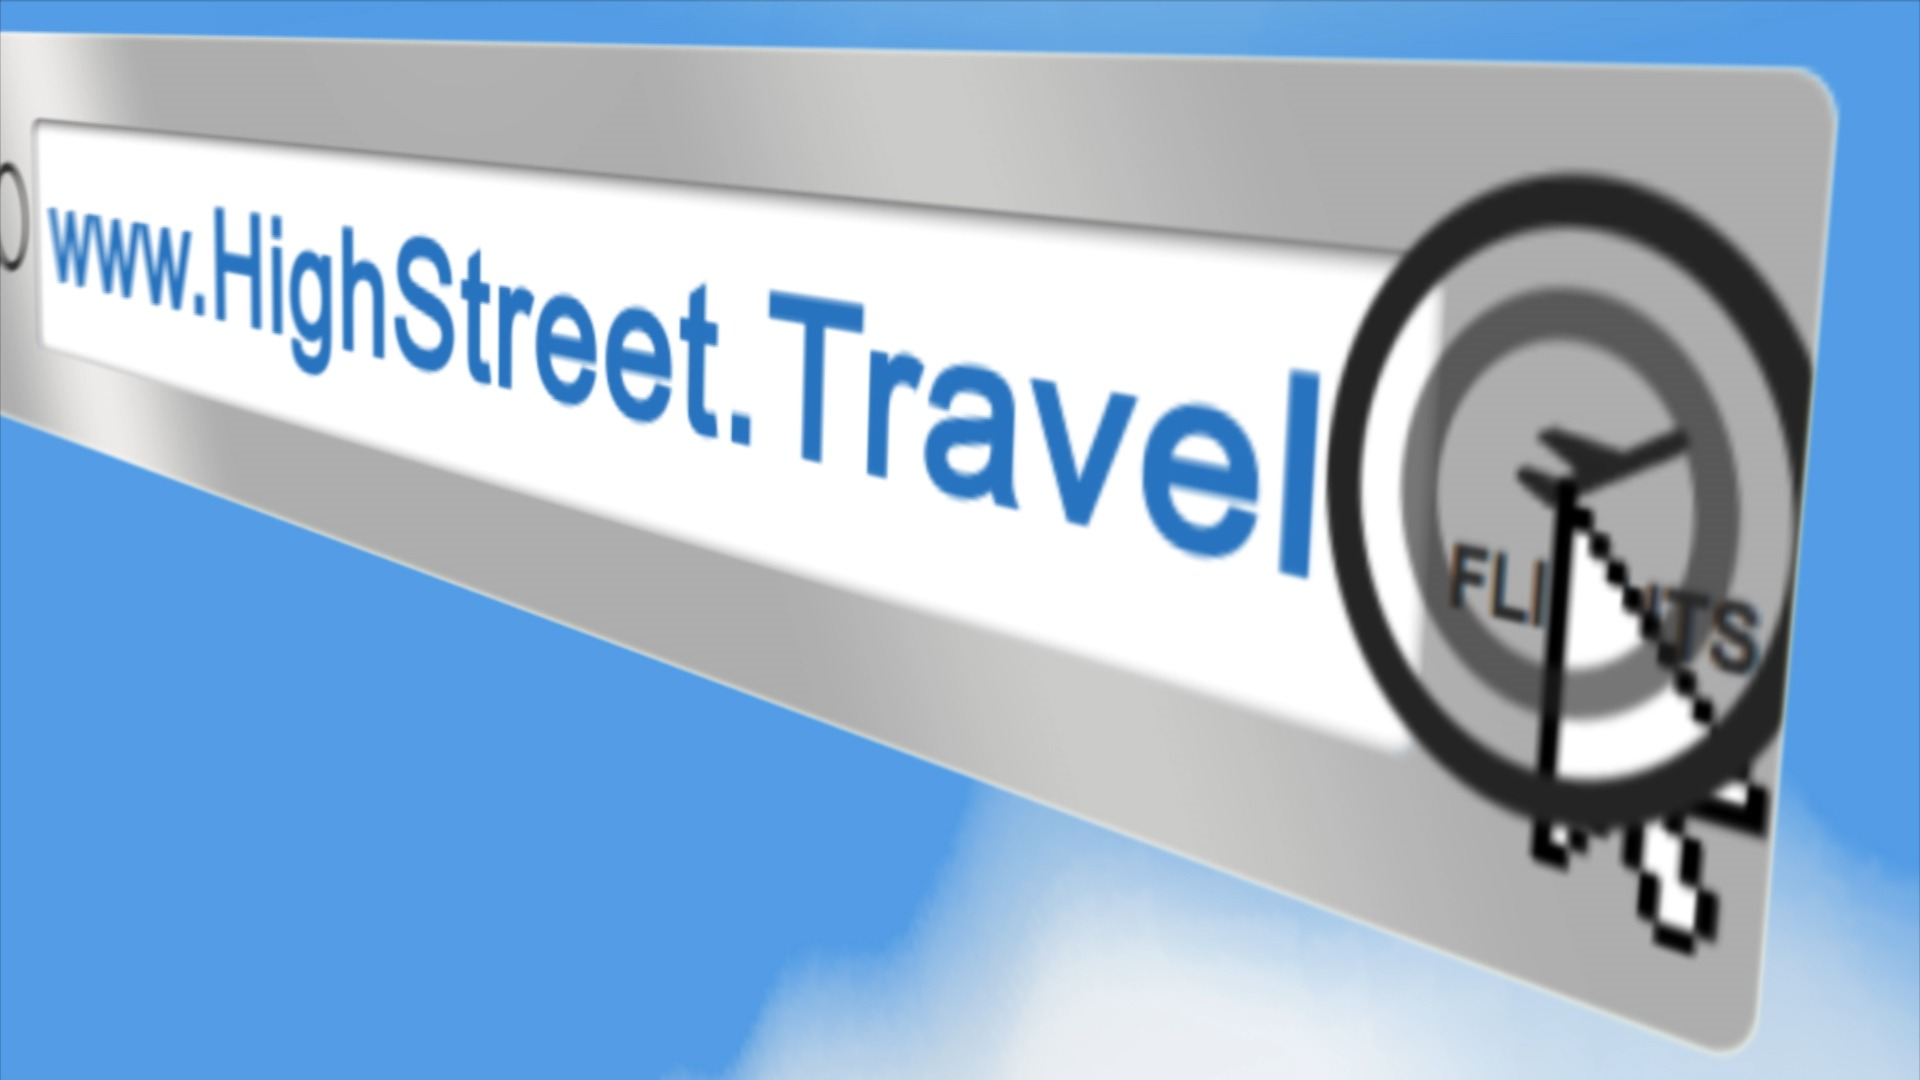 HighStreetTravel 10sec TV commercial